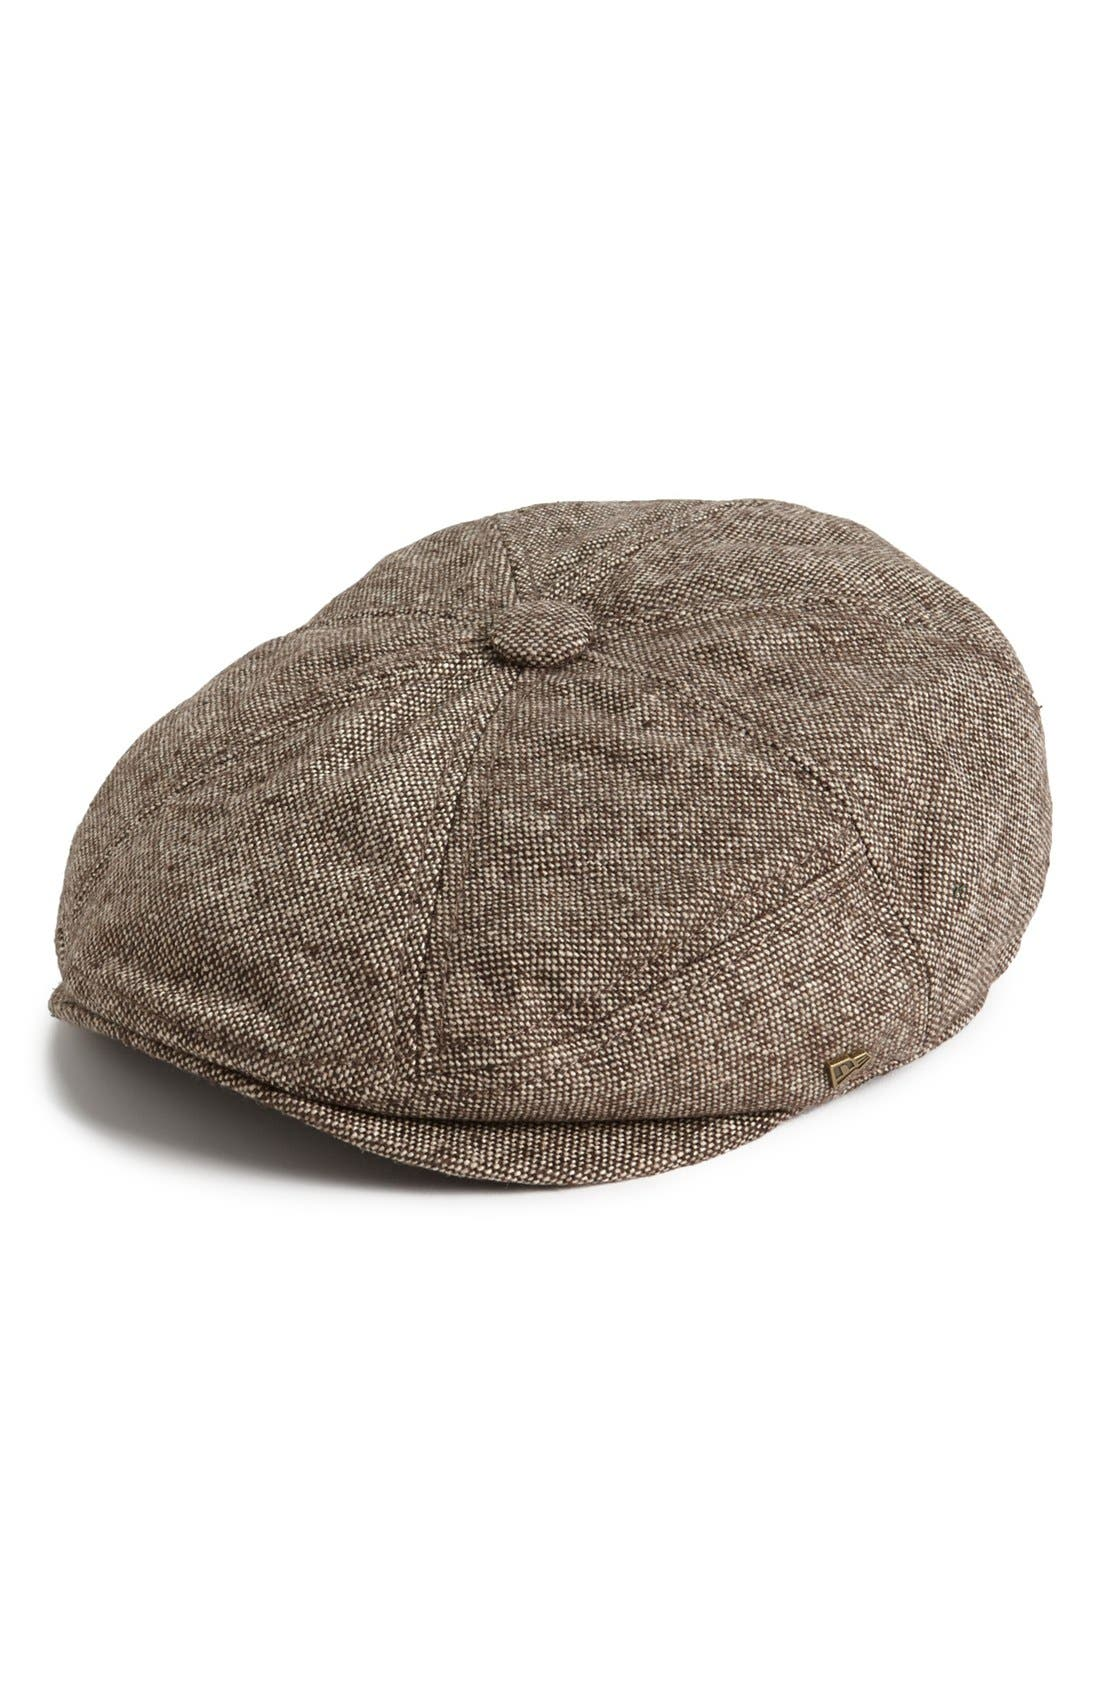 Main Image - New Era Cap 'EK®' Tweed Driving Cap